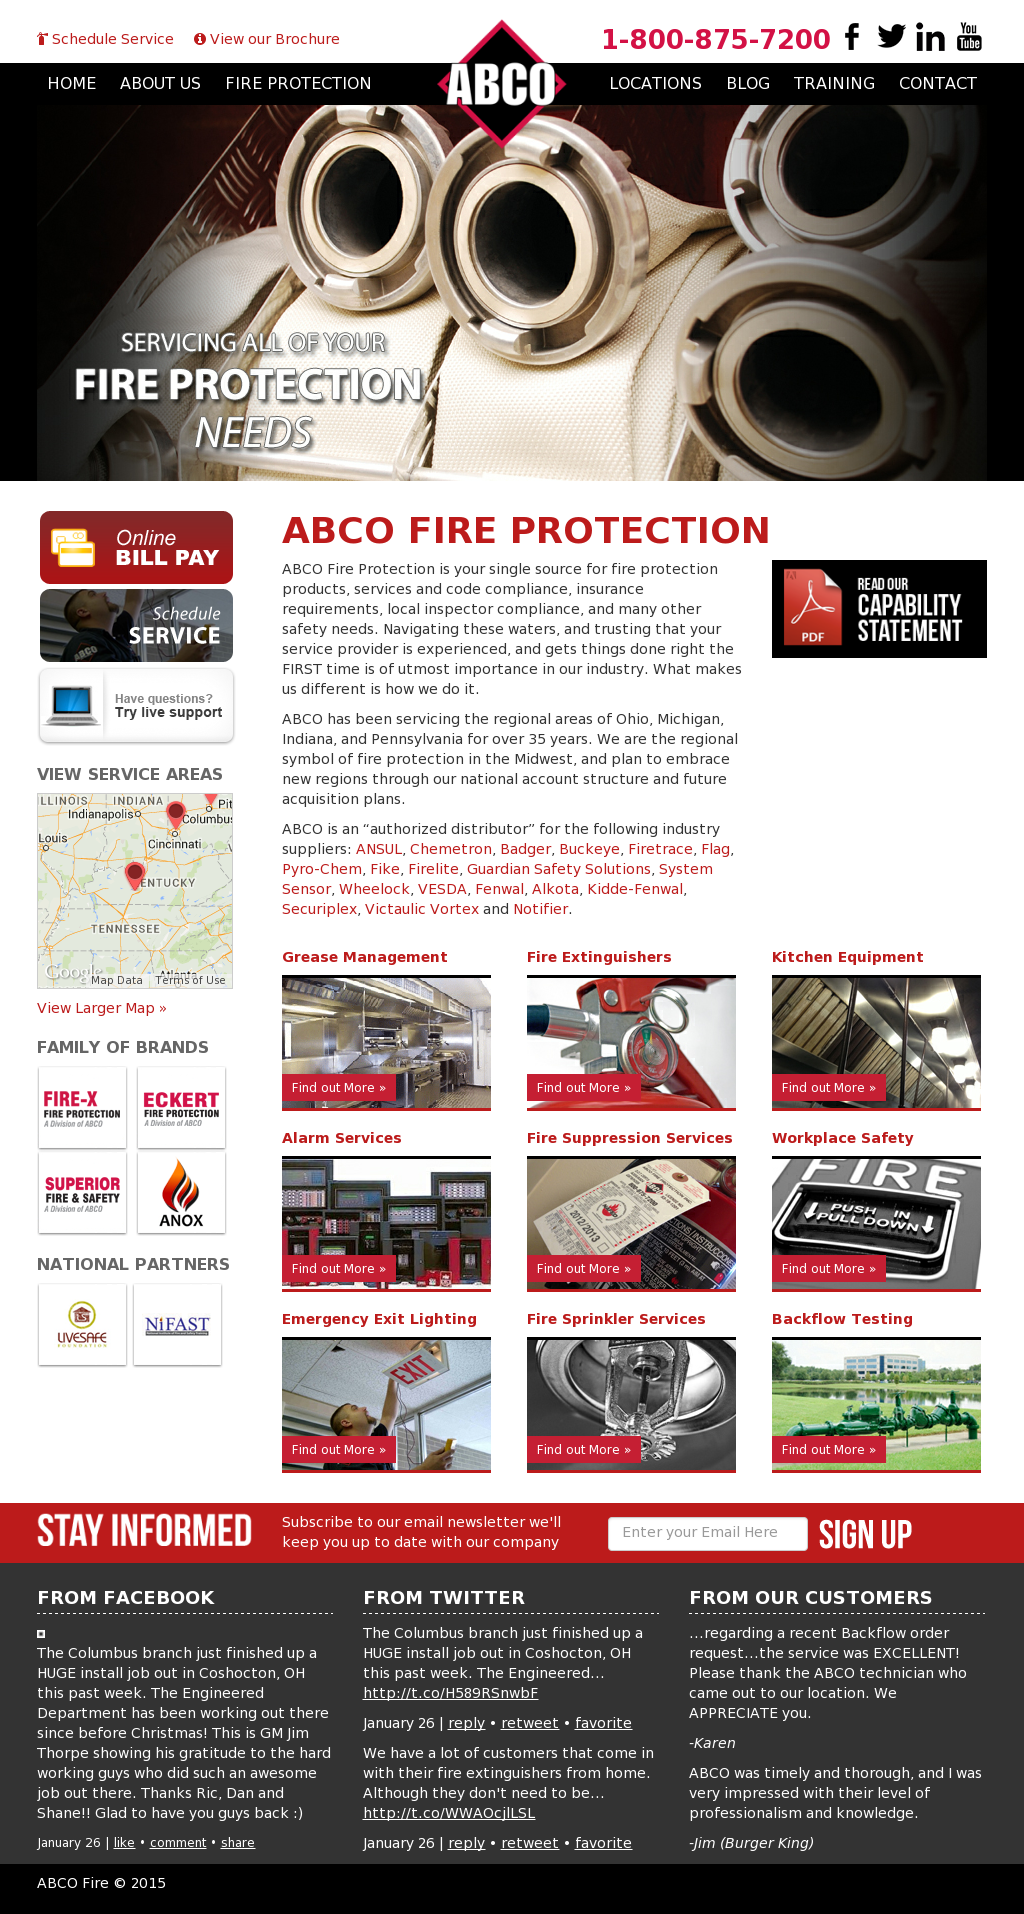 Abcofire Competitors, Revenue and Employees - Owler Company